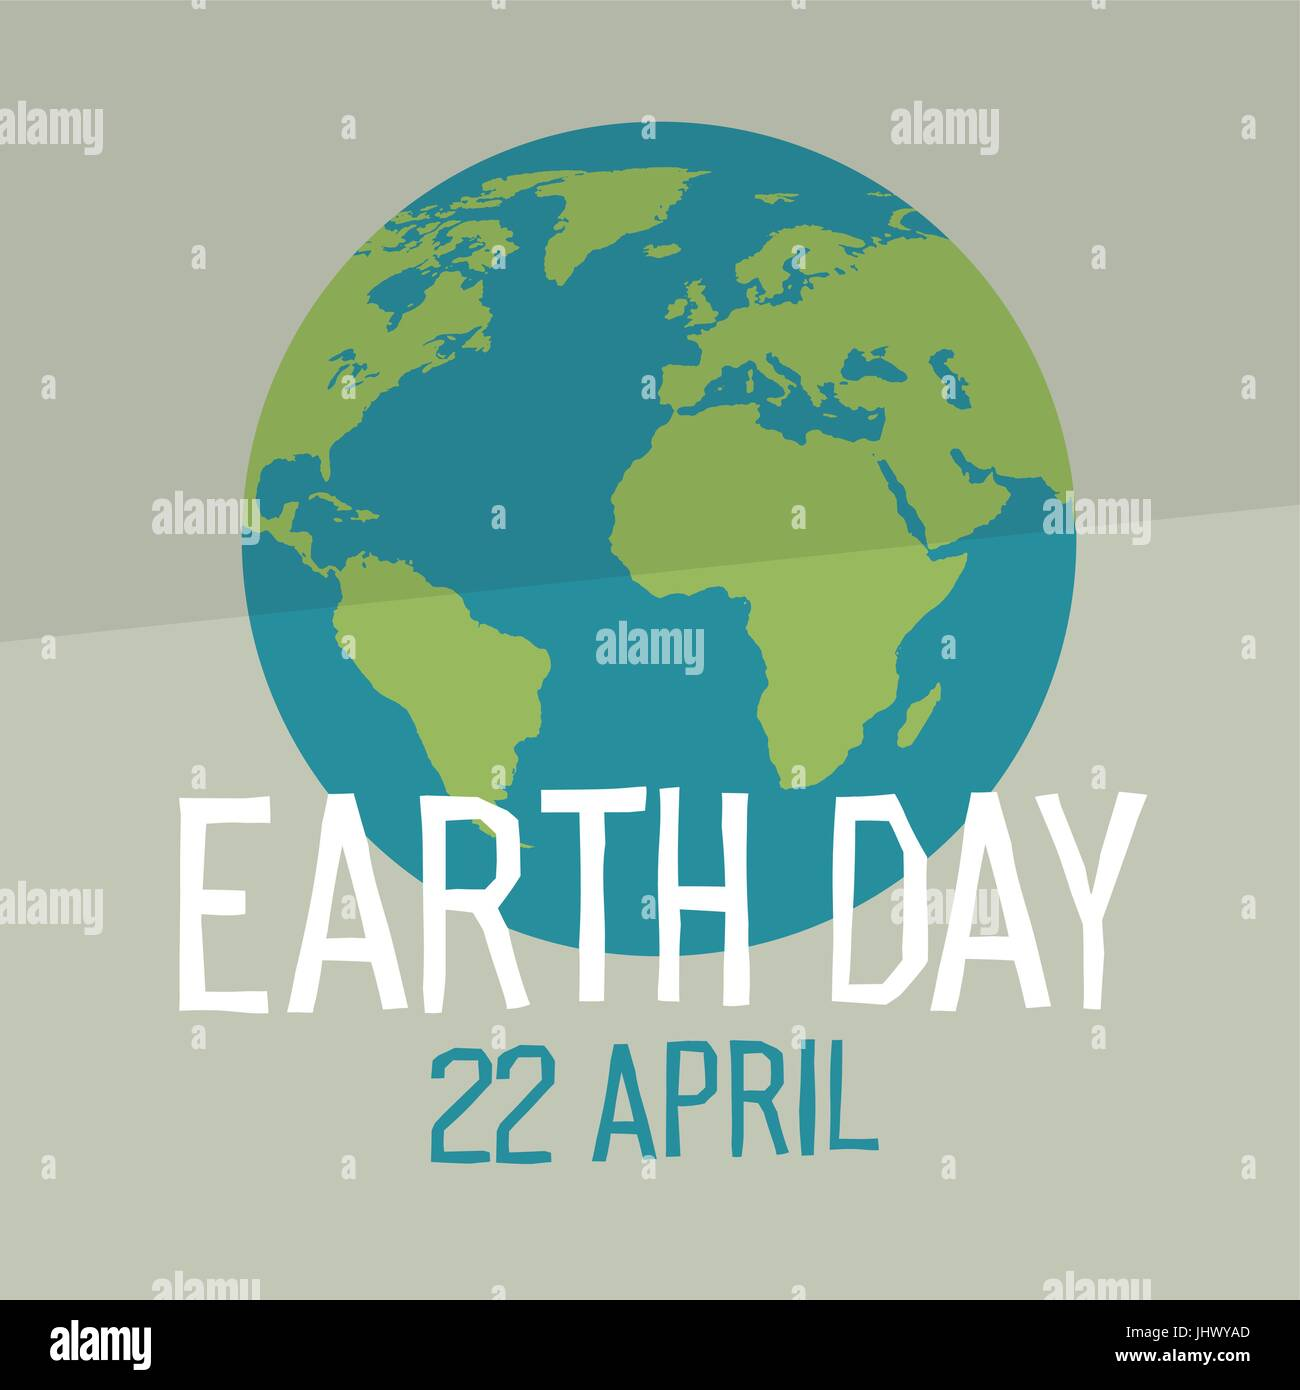 Earth day poster design in flat style similar world map background earth day poster design in flat style similar world map background vector illustration save the planet concept gumiabroncs Choice Image